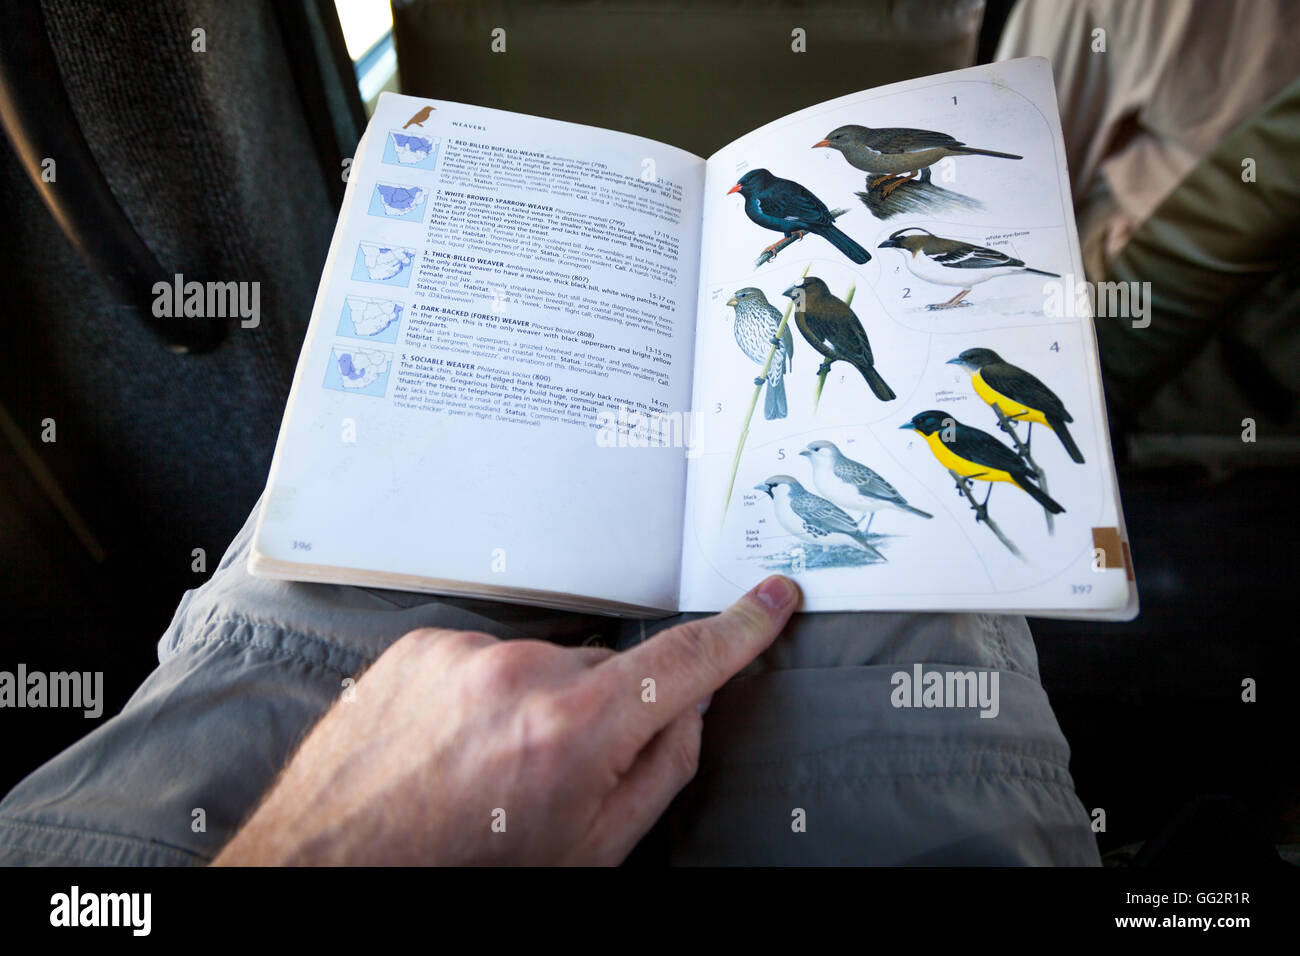 Namibia Wildlife book of local birds in Africa - Stock Image